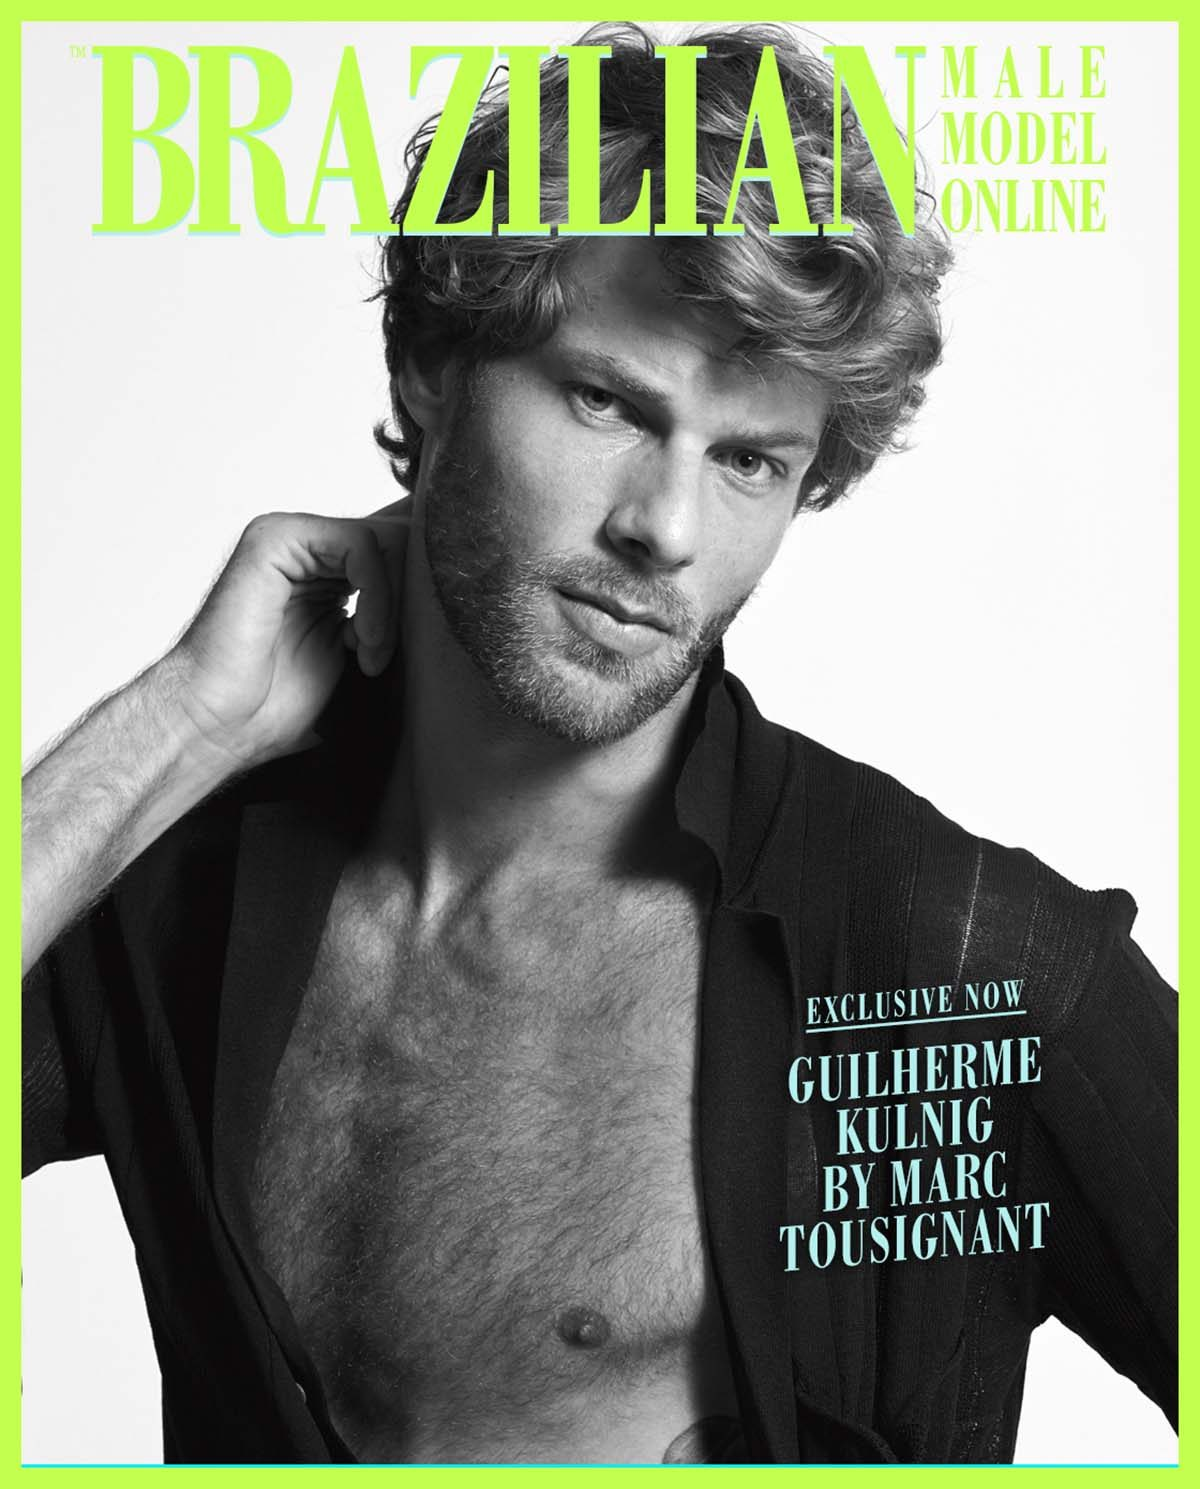 Guilherme Kulnig by Marc Tousignant